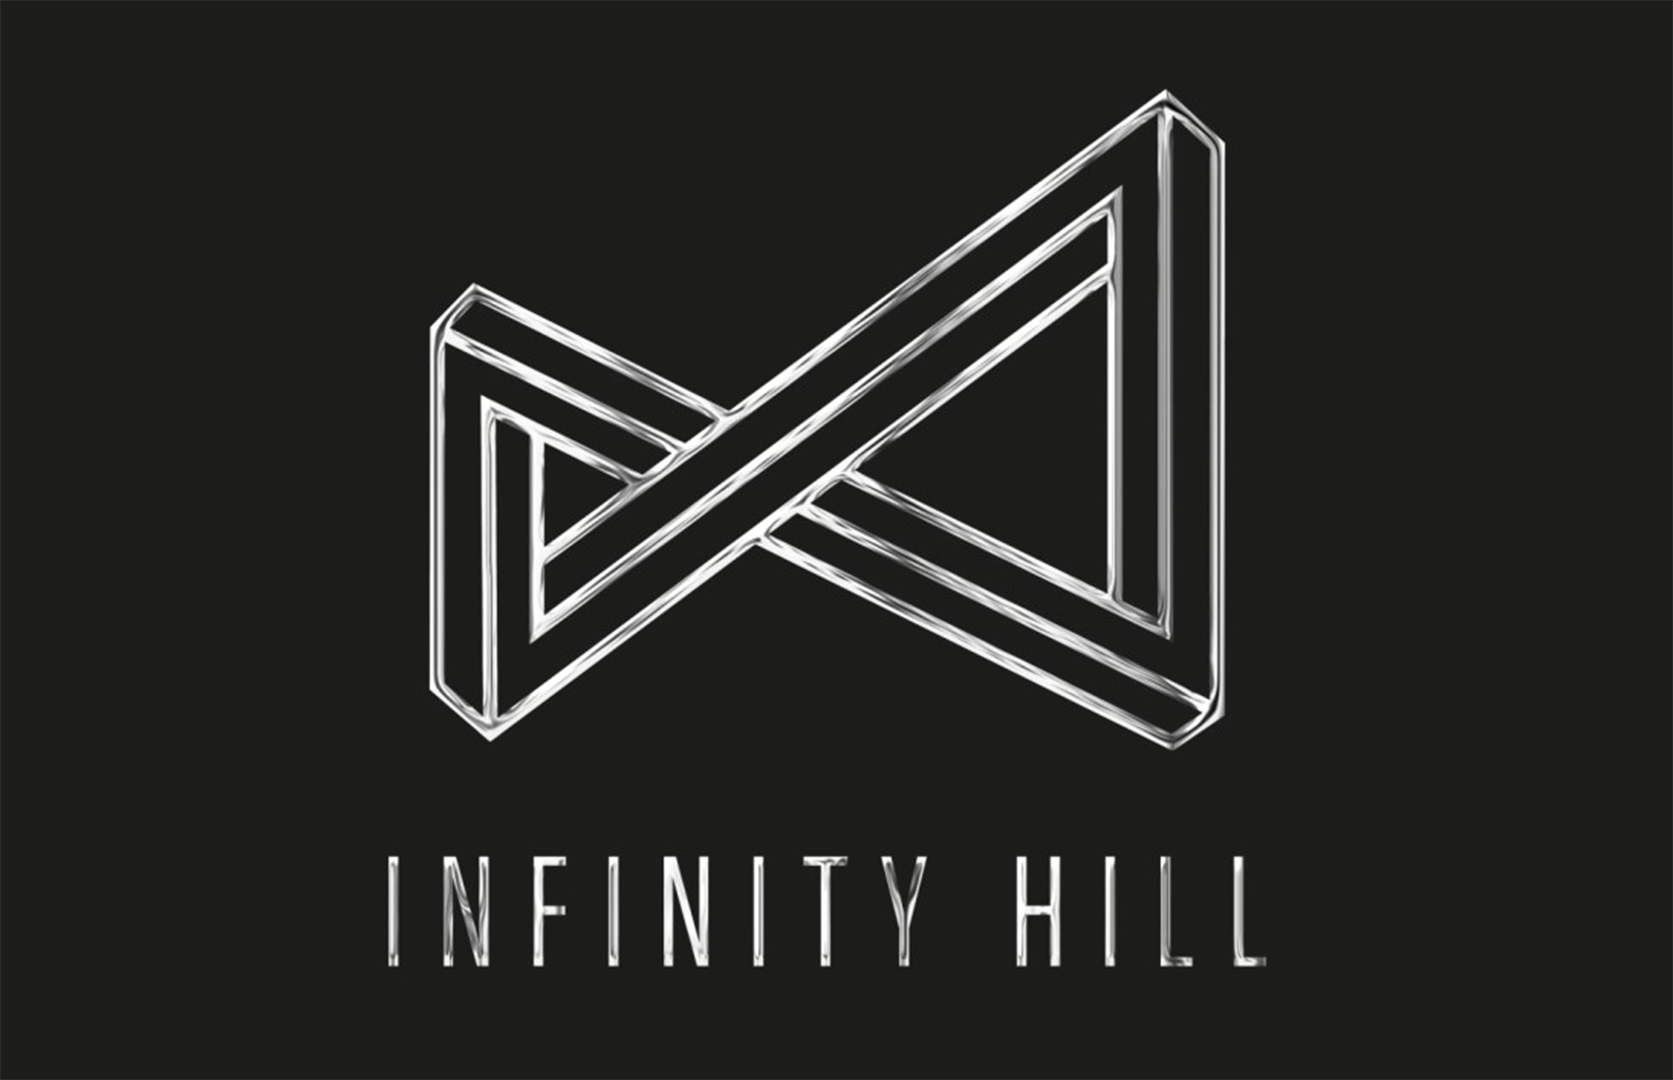 Infinity Hill